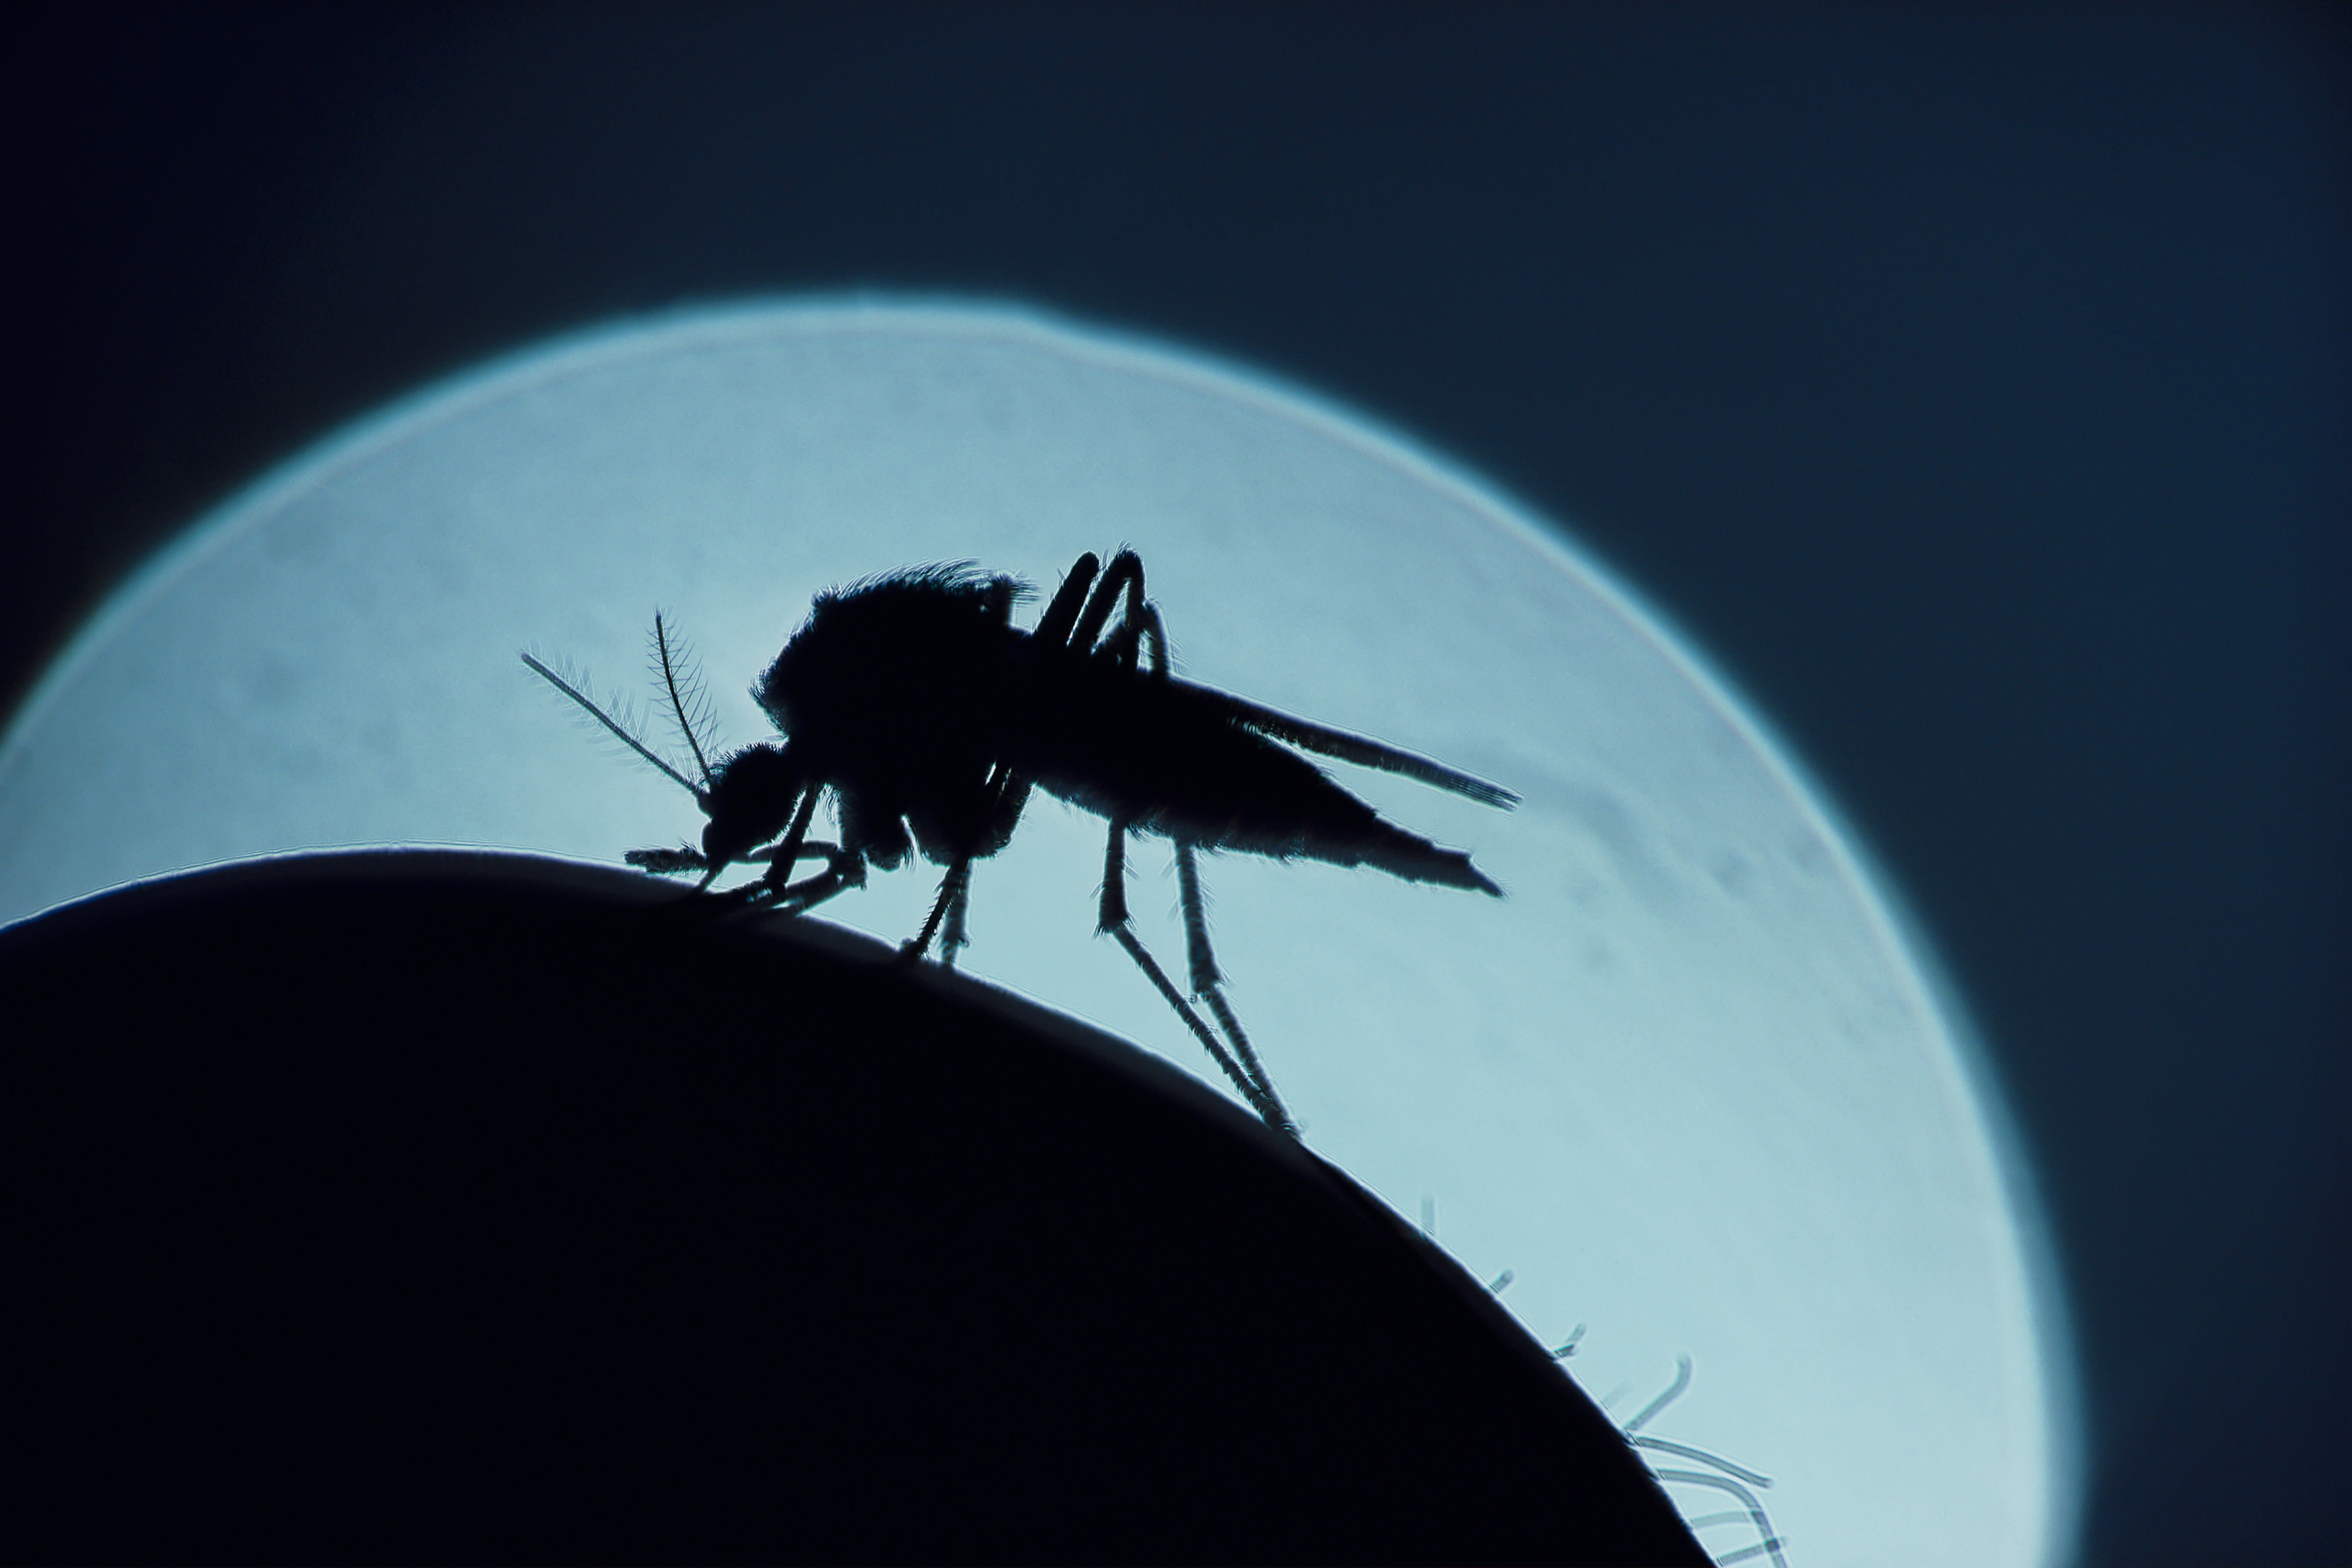 A mosquito, that is silhouetted against the moon,bites a human arm